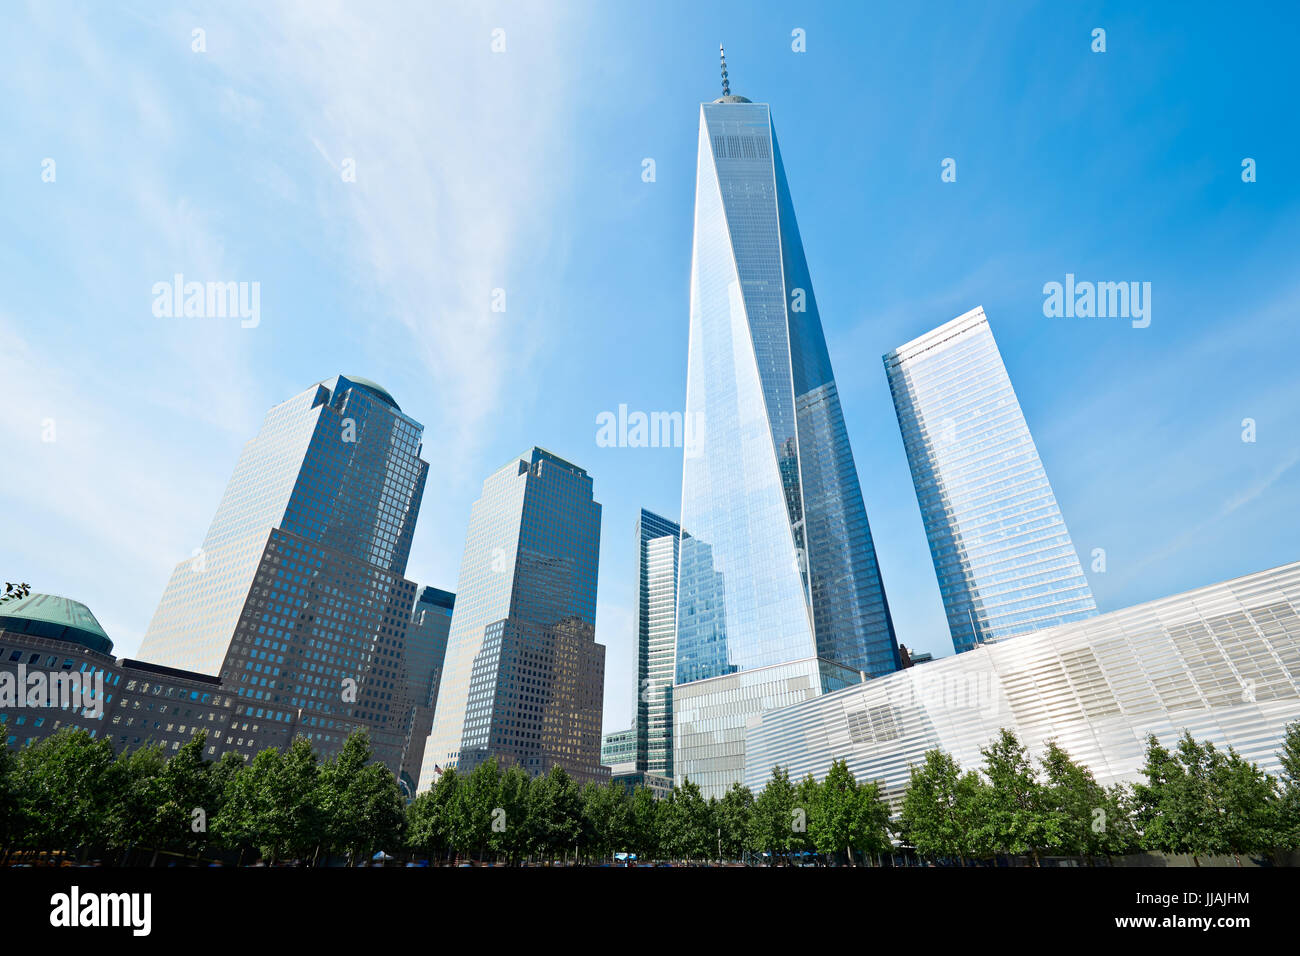 One World Trade Center skyscraper surrounded by glass buildings and green trees, blue sky in New York - Stock Image